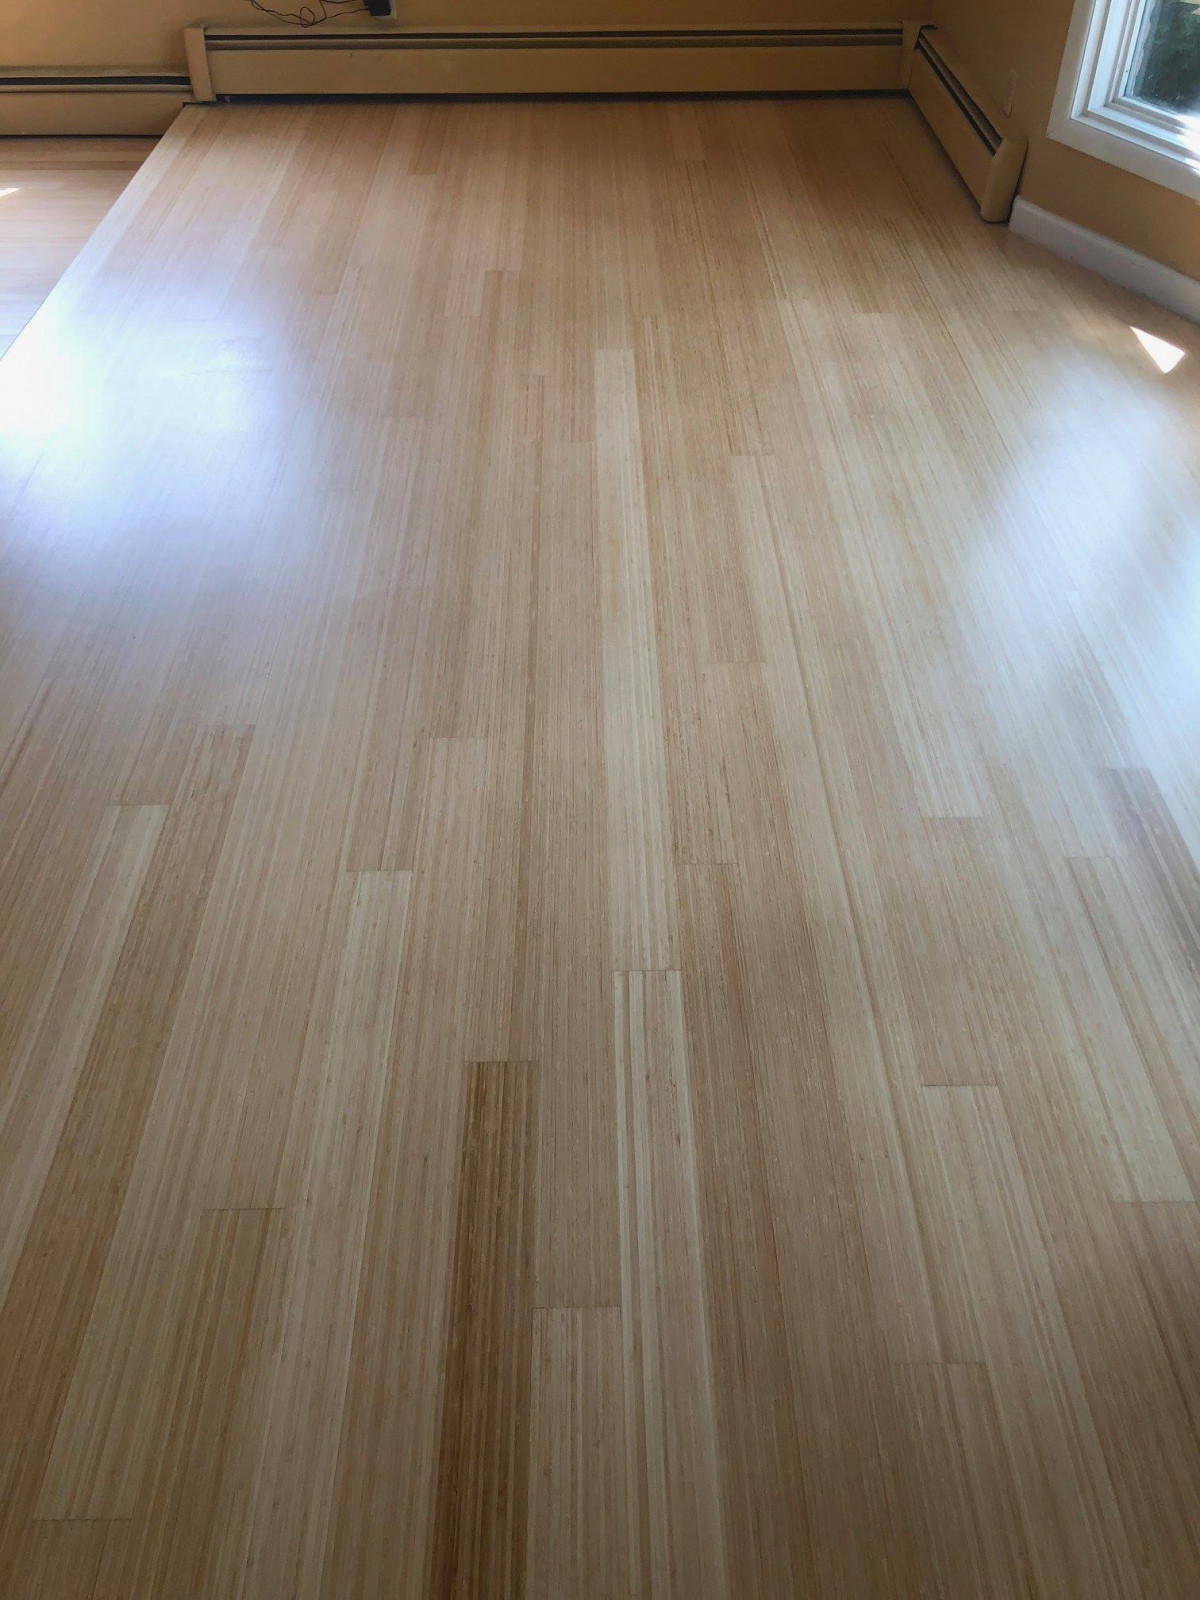 BLOG: What Makes a Good Wood Flooring Company?